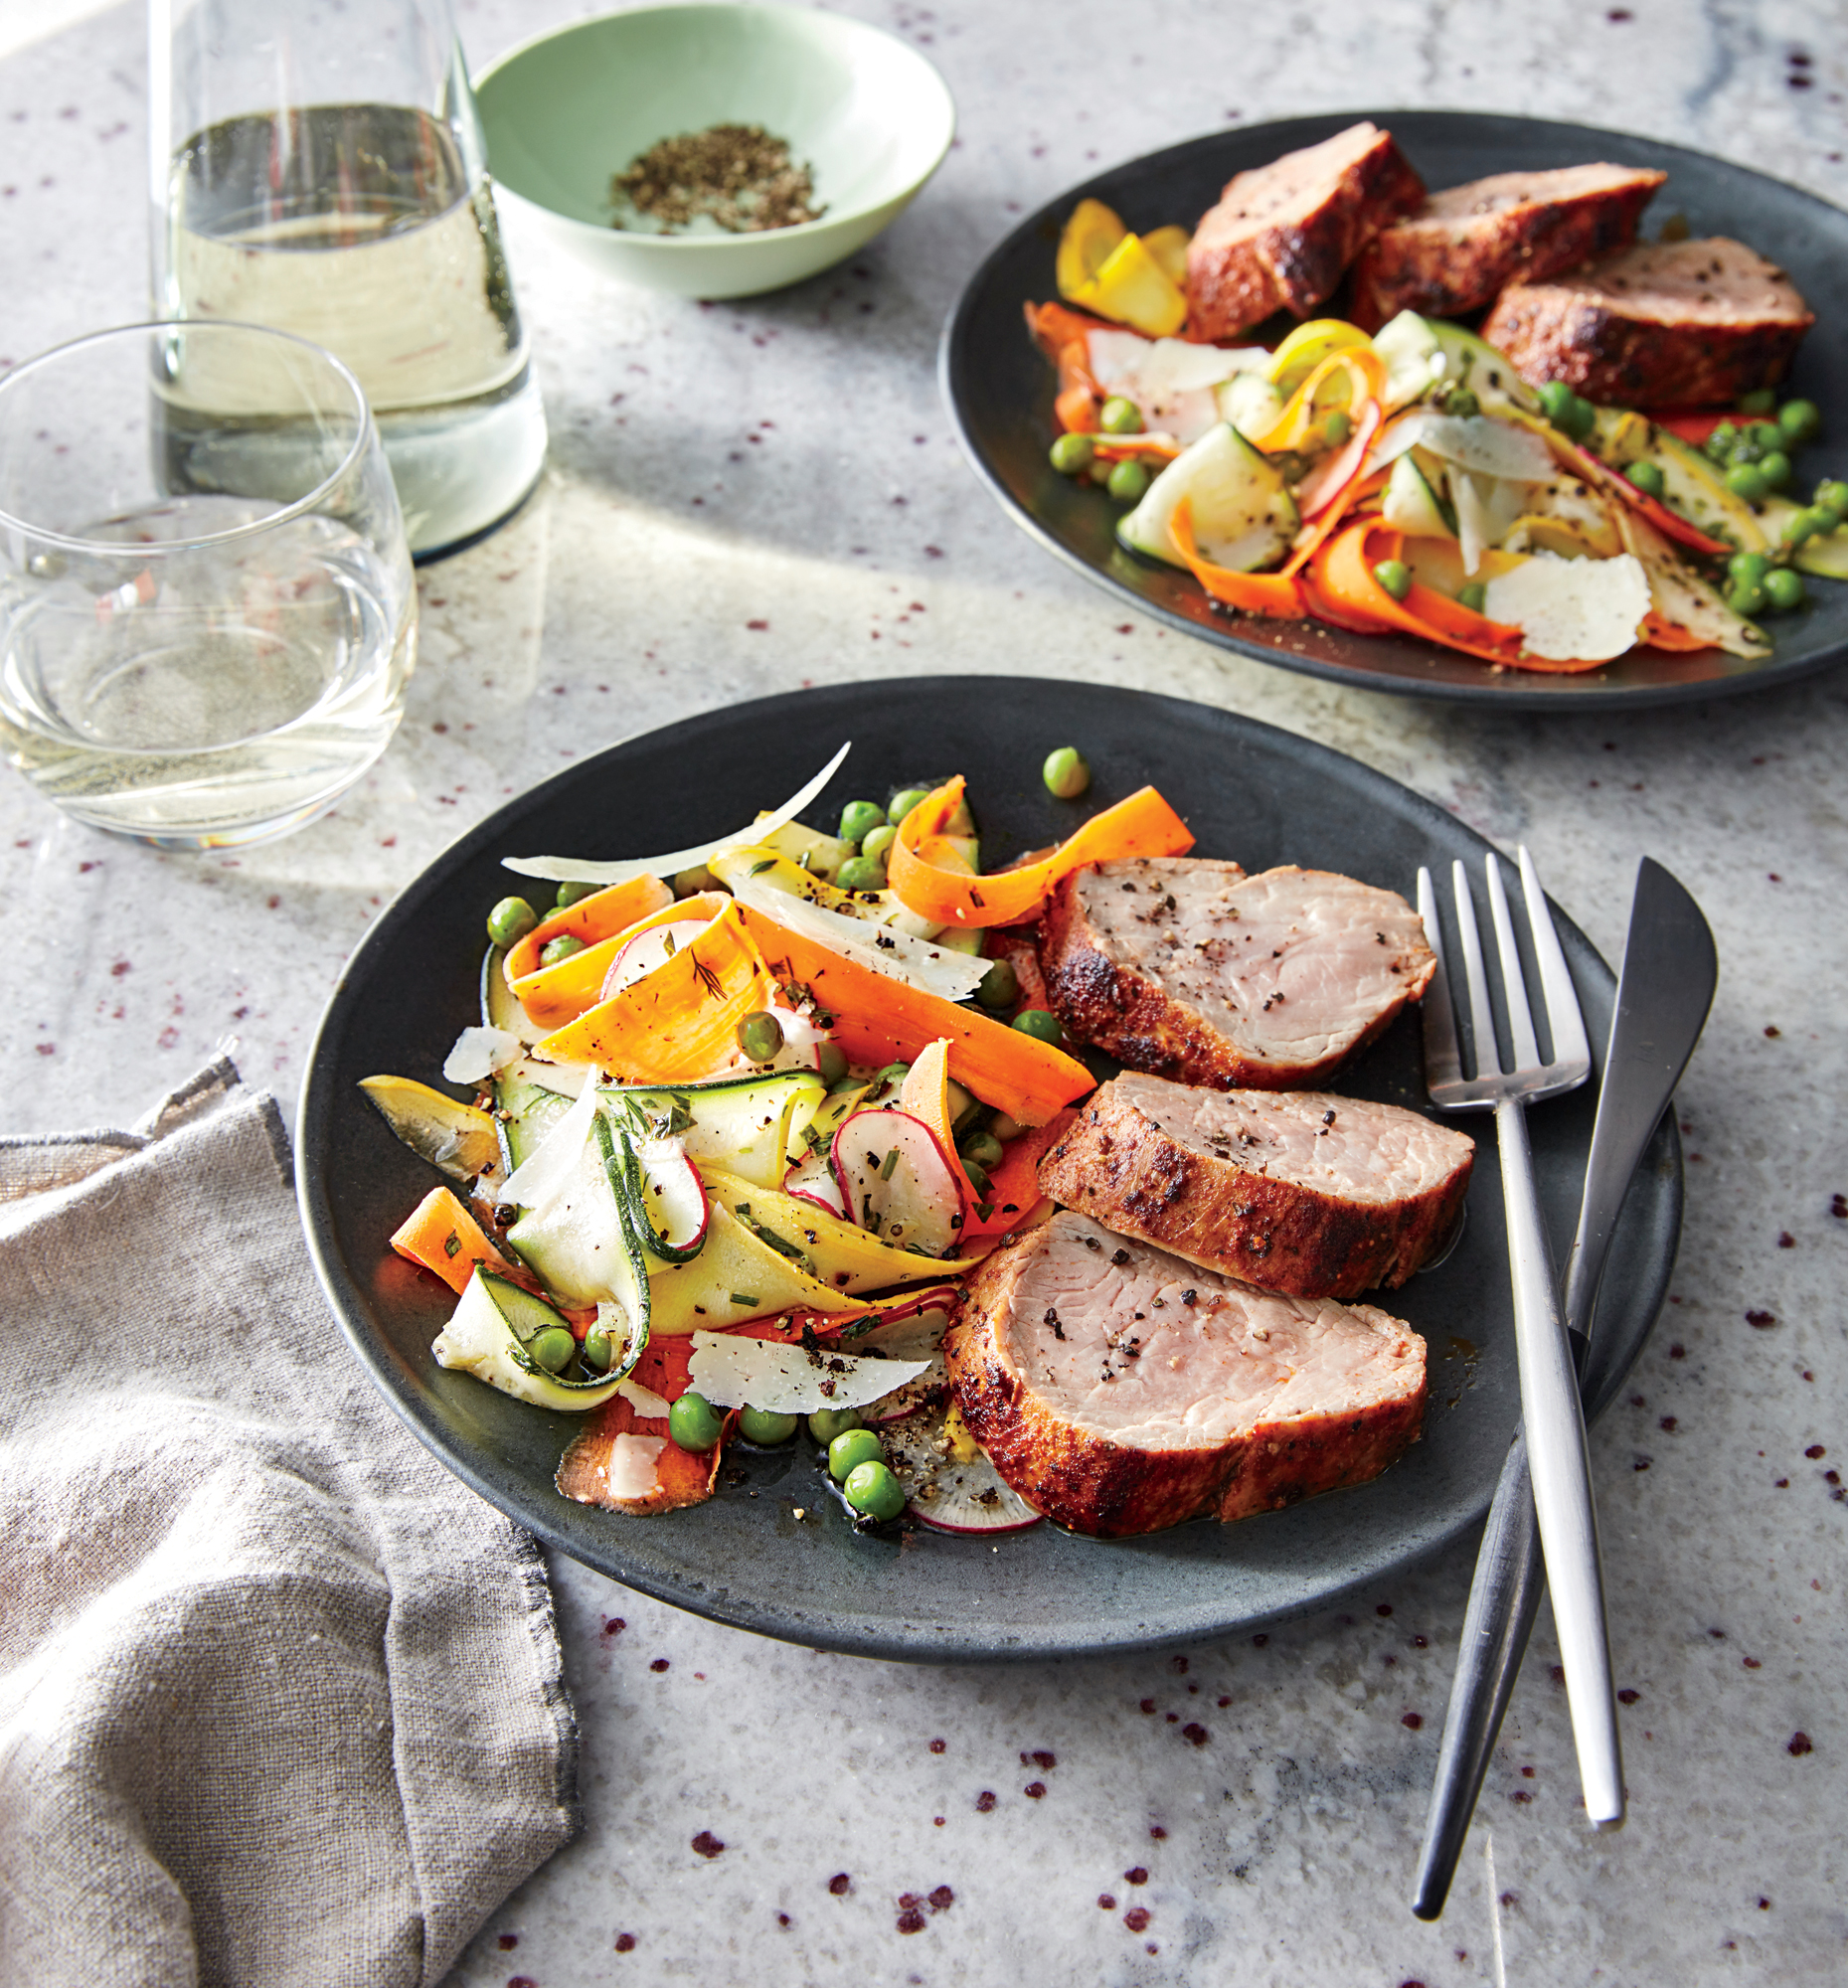 Pan-Roasted Pork with Baby Vegetable Salad